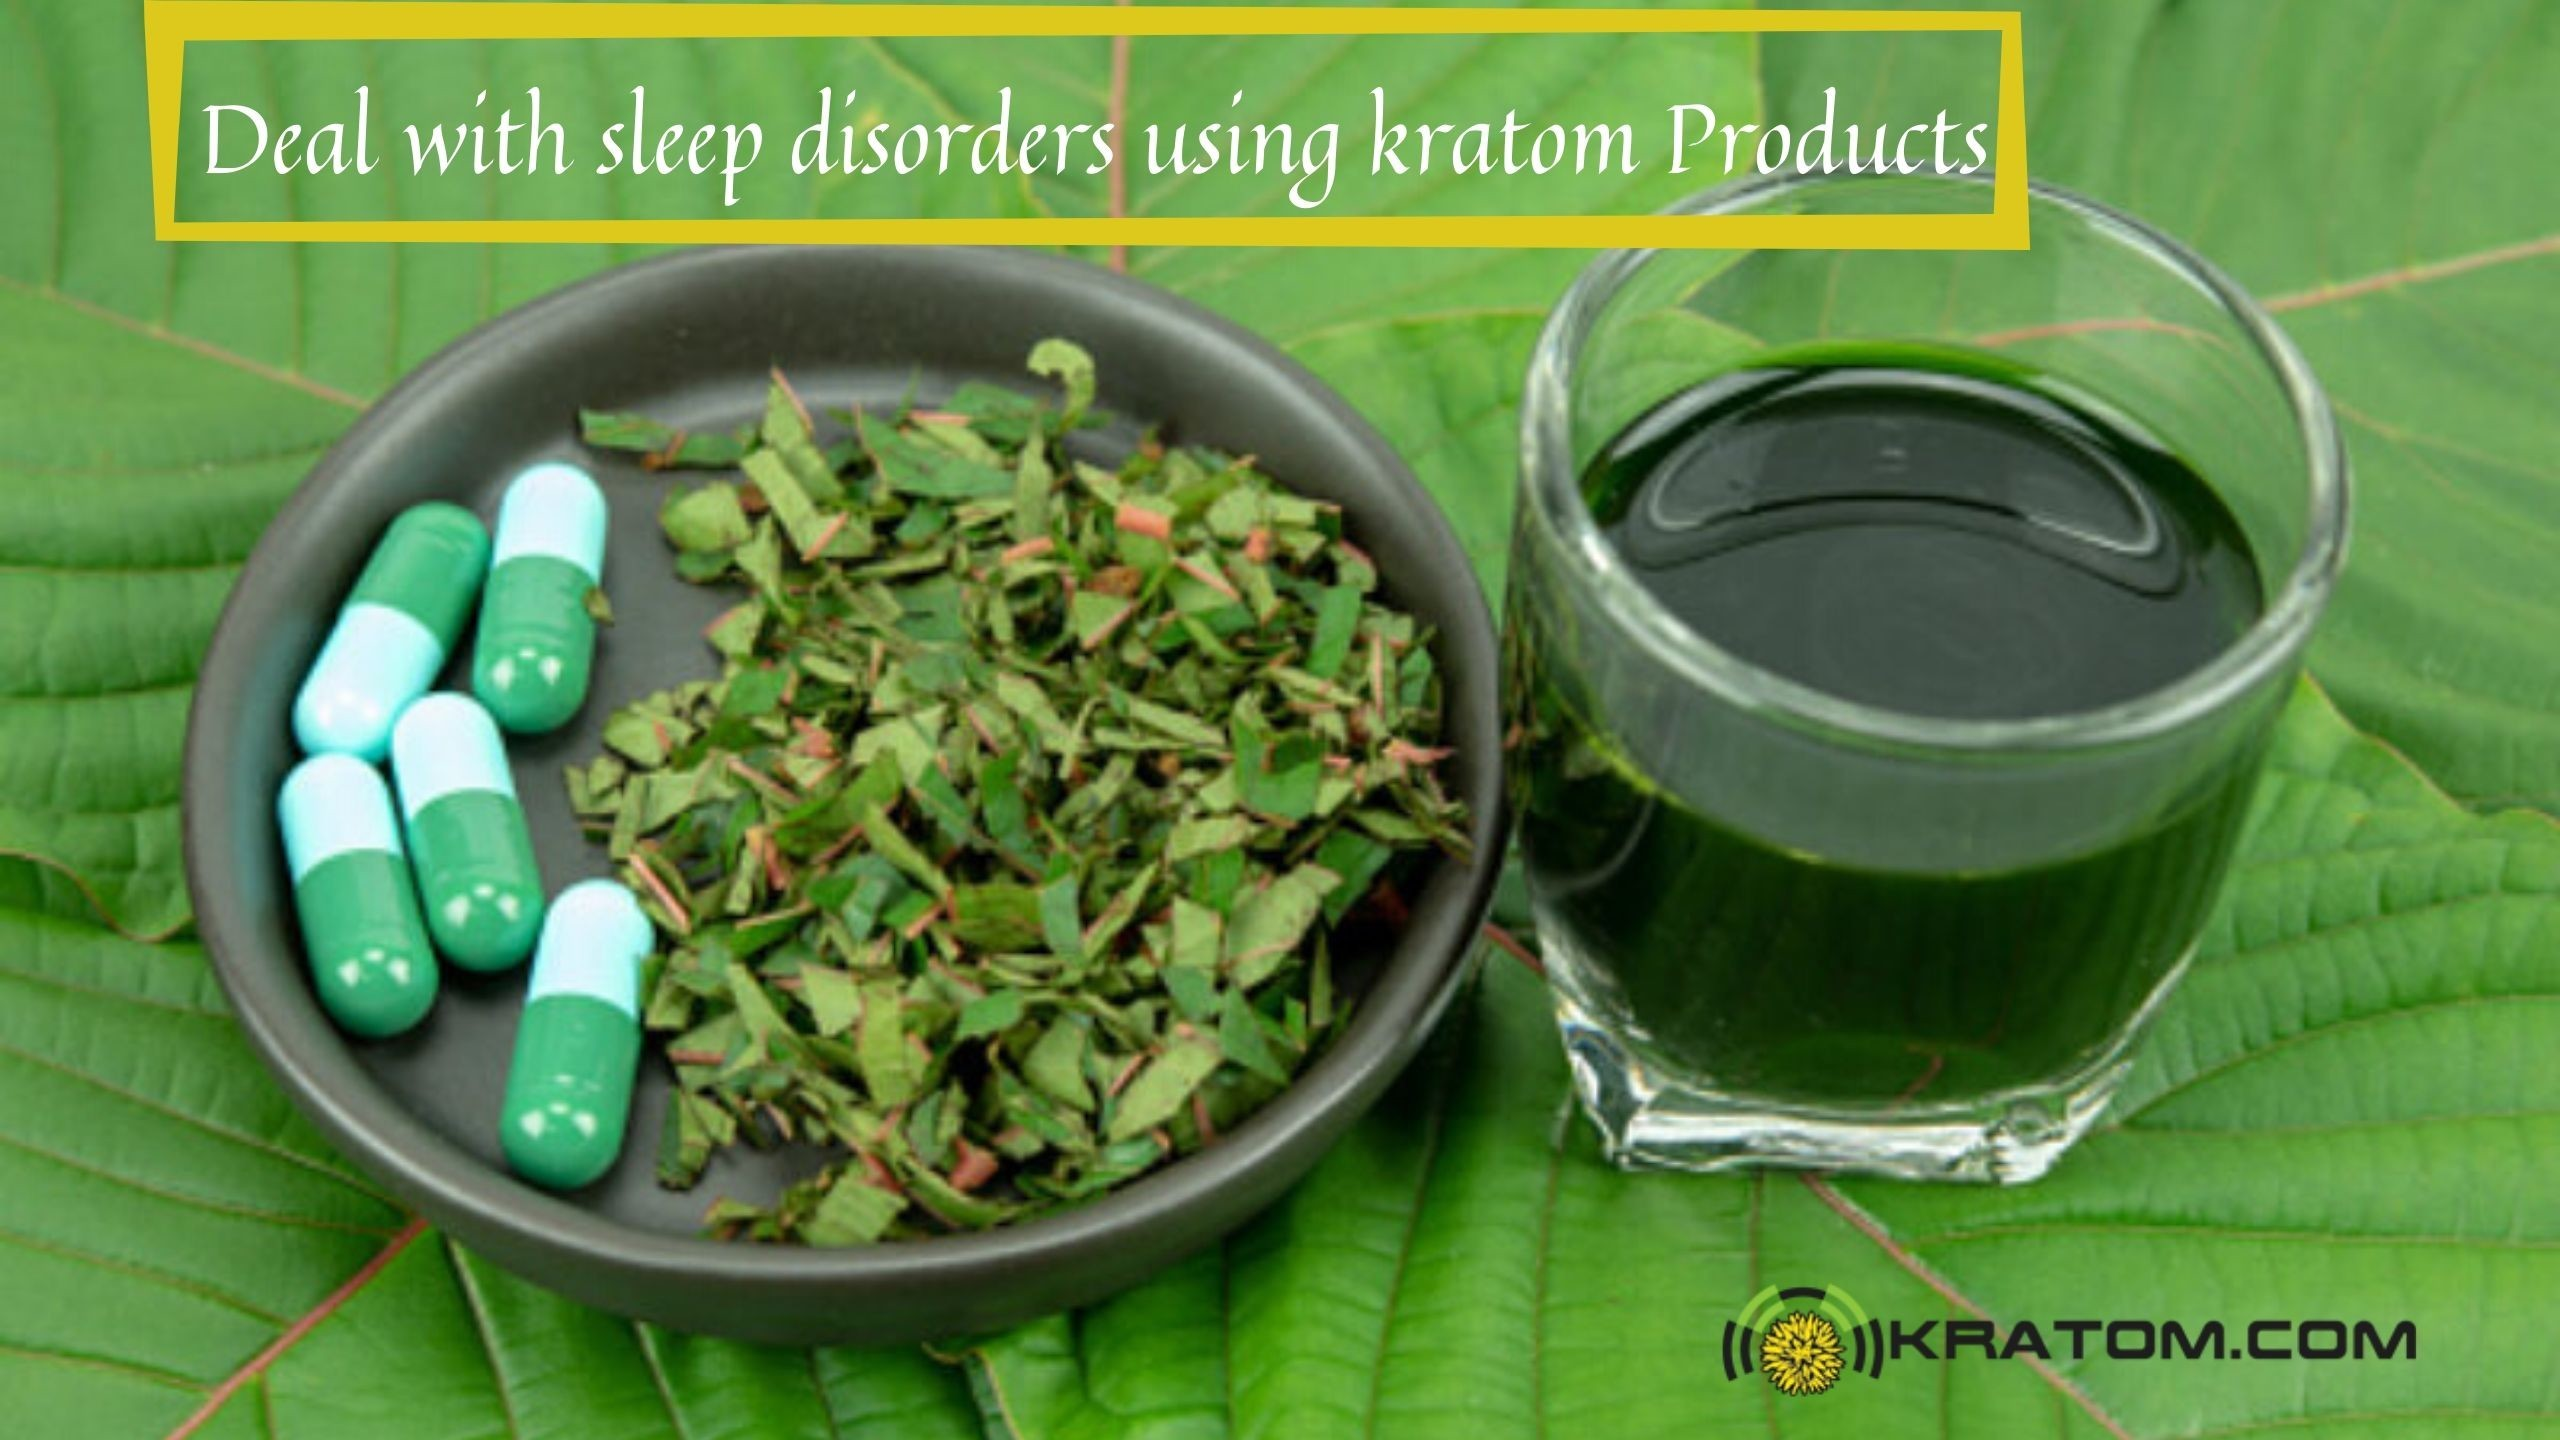 More People Dealing with Sleep Disorders are now Using Kratom Products to Sleep Well